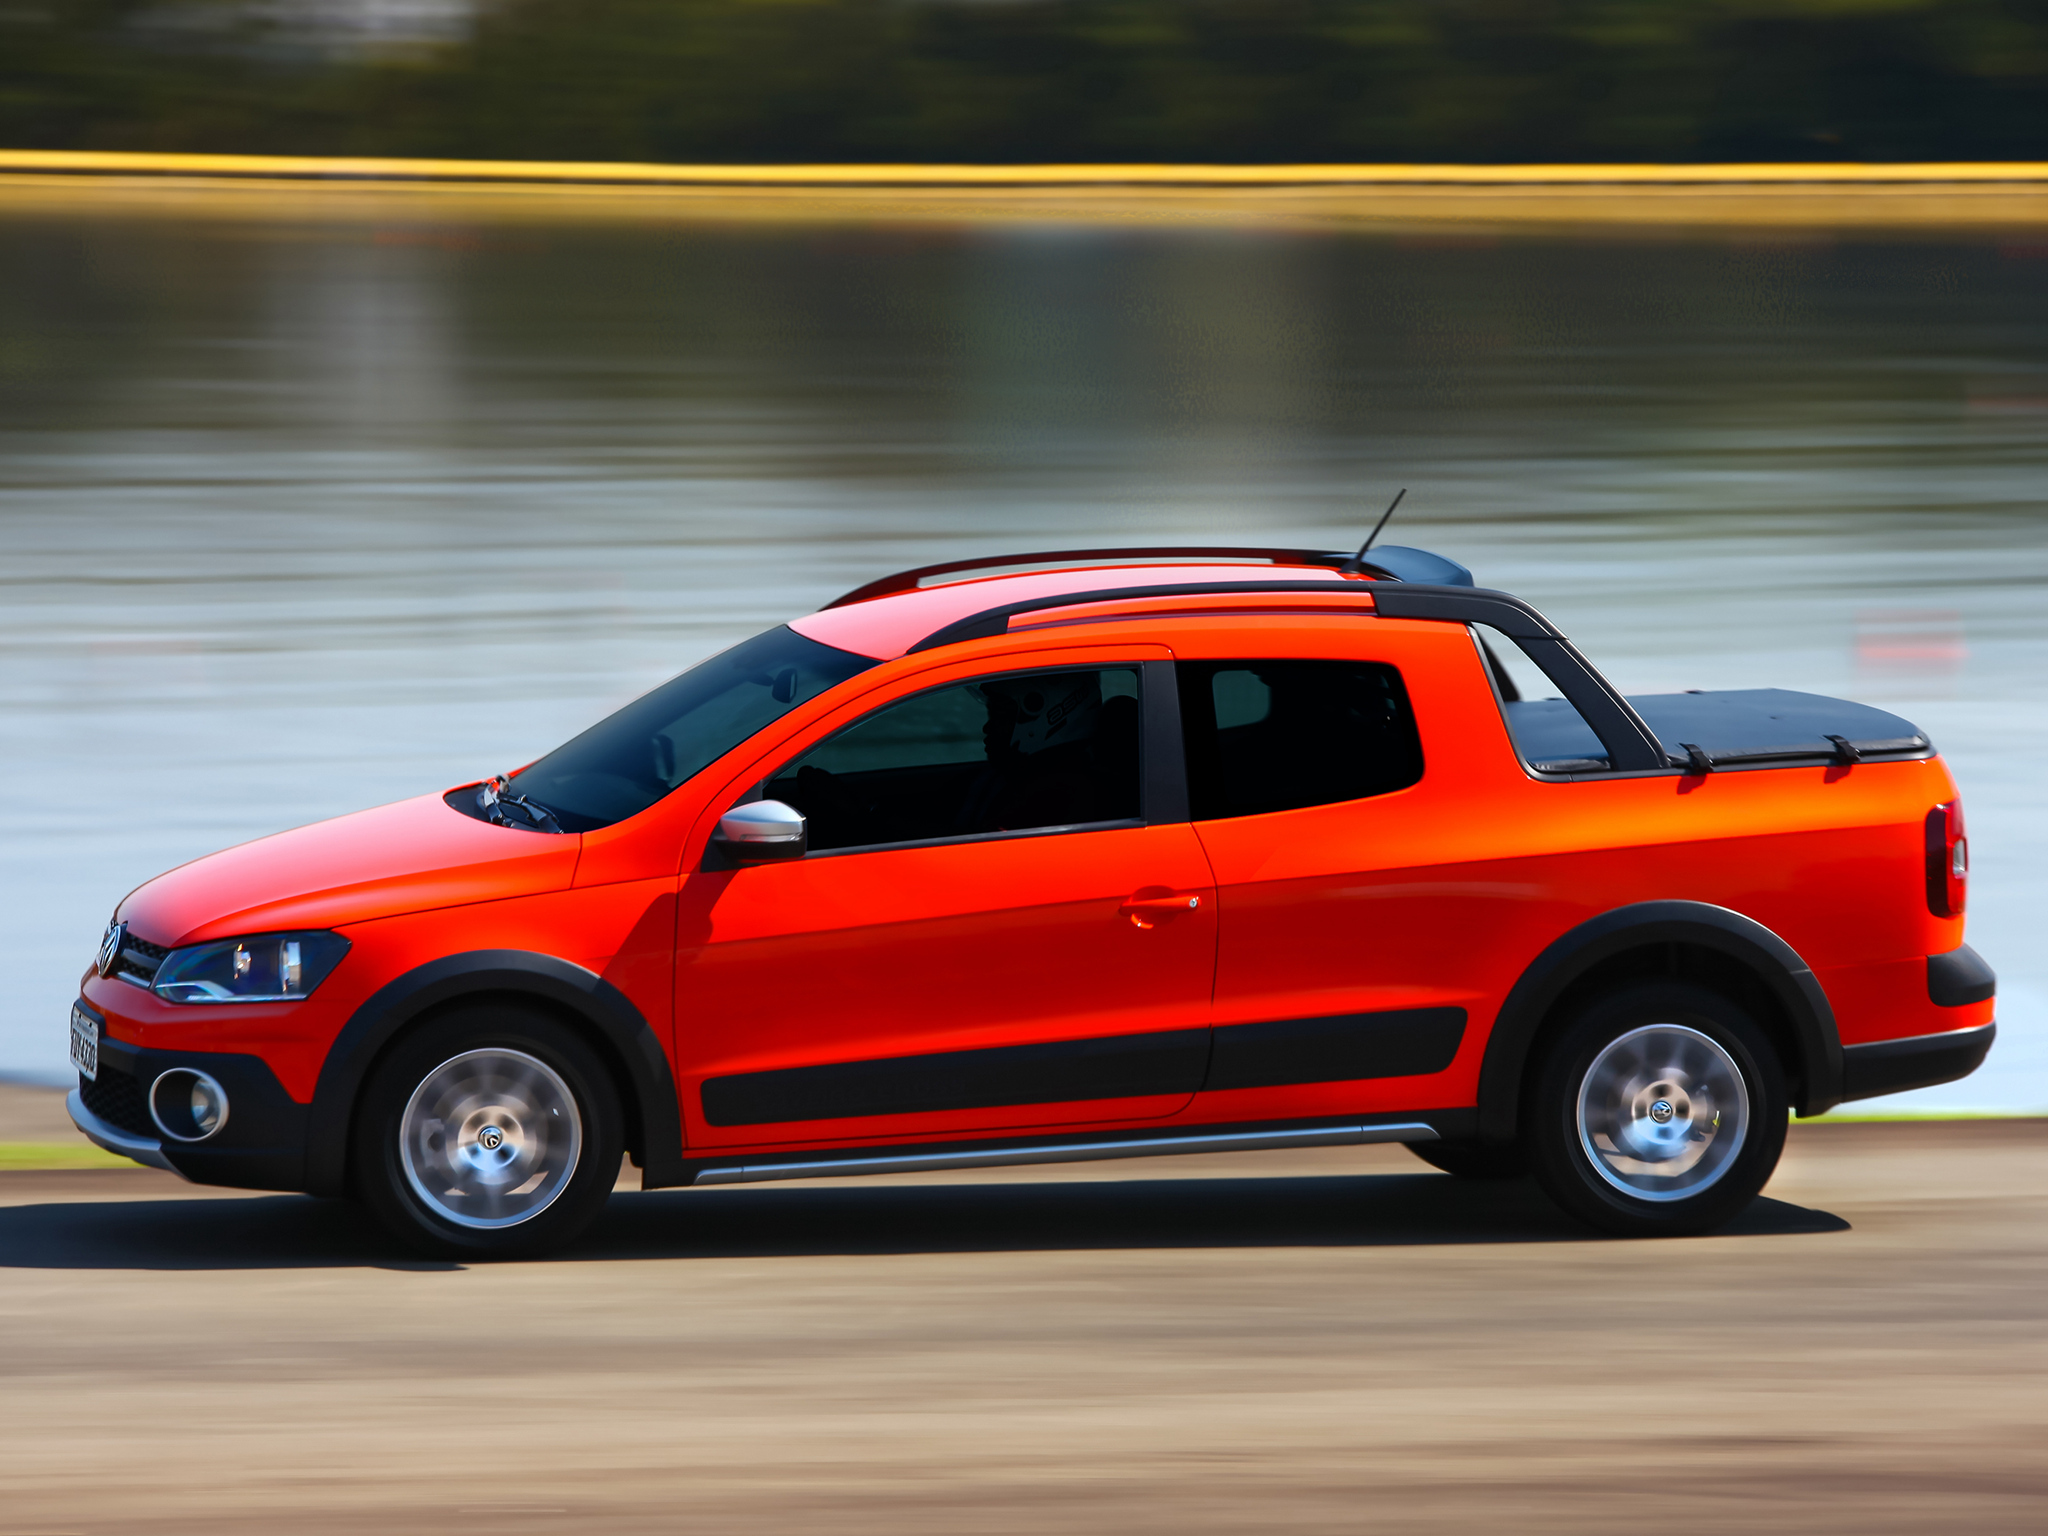 Toyota Diesel Pickup >> 2014 Volkswagen Saveiro Cross Pickup Gets Crew Cab Version in Brazil - autoevolution